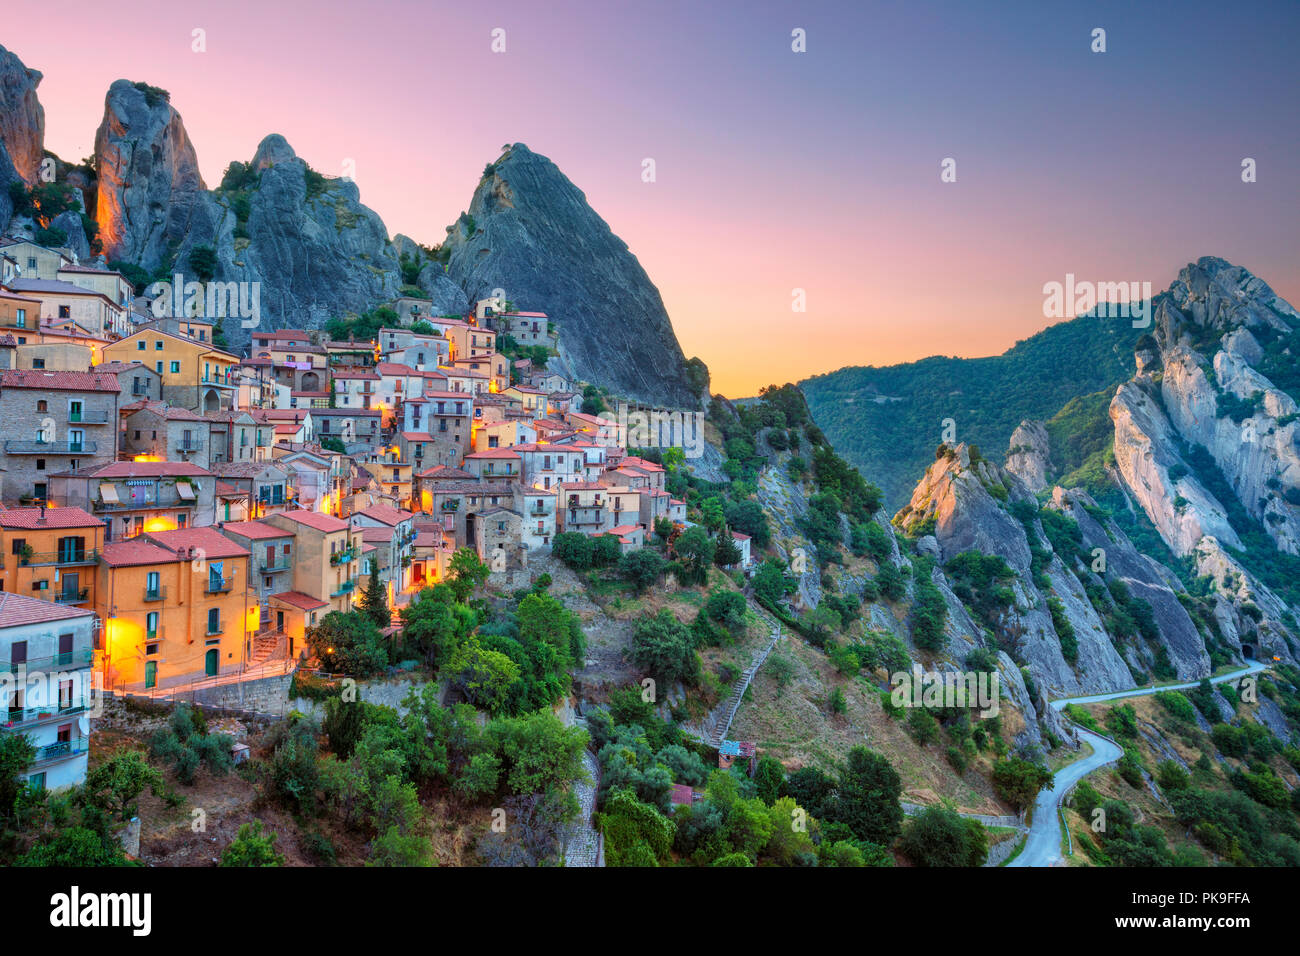 Castelmezzano, Italy. Cityscape aerial image of medieval city of Castelmazzano, Italy during beautiful sunrise. Stock Photo